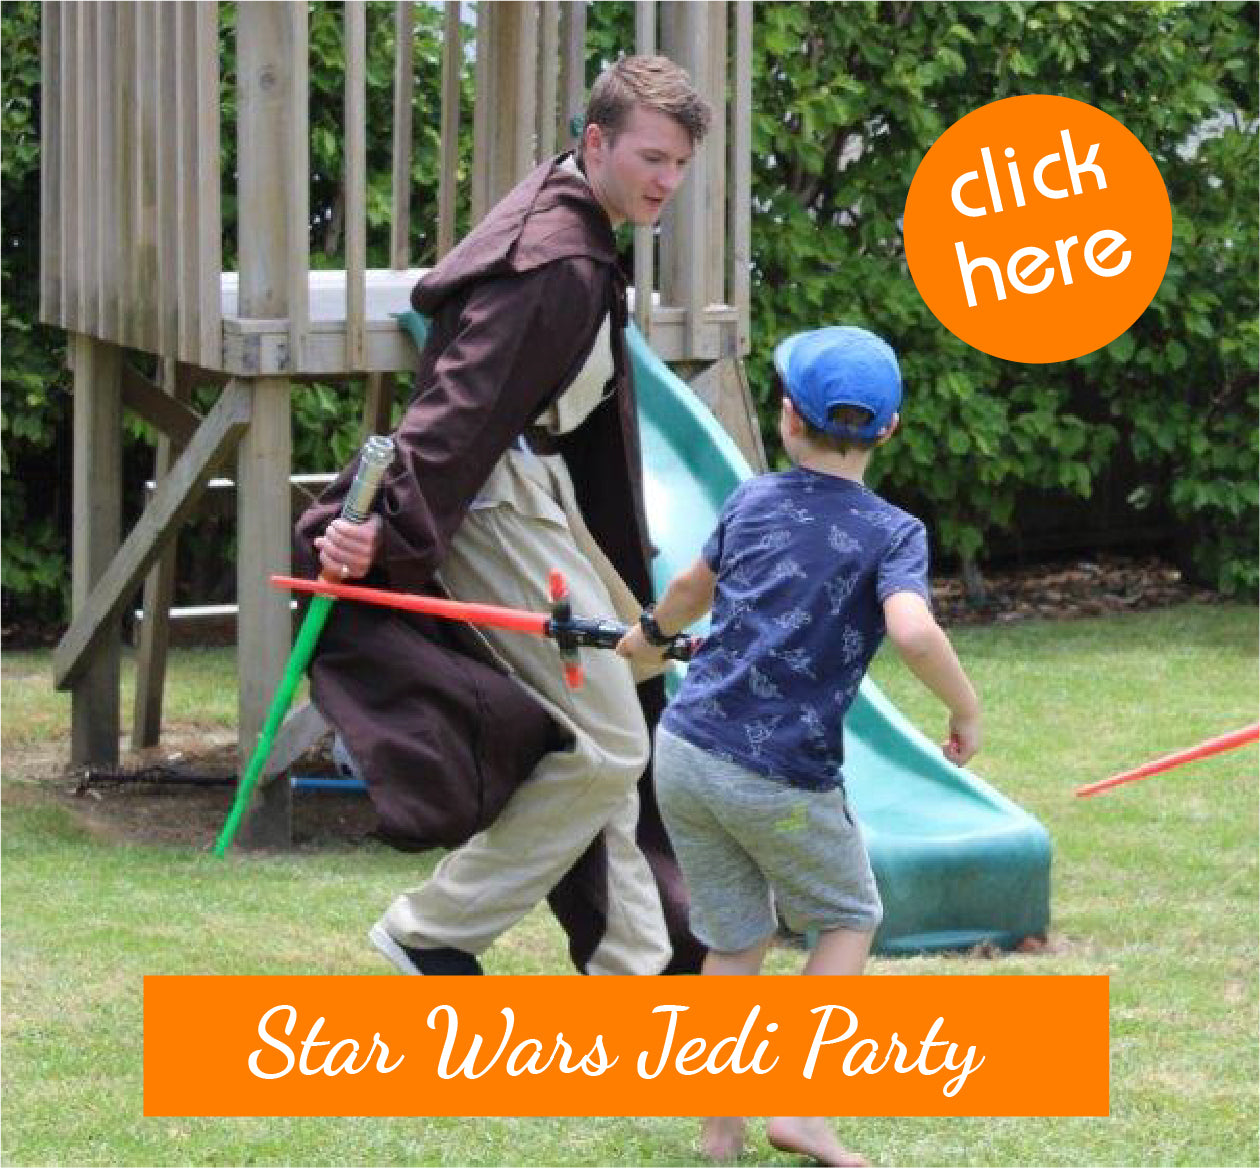 Star Wars Jedi Party Entertainers Auckland